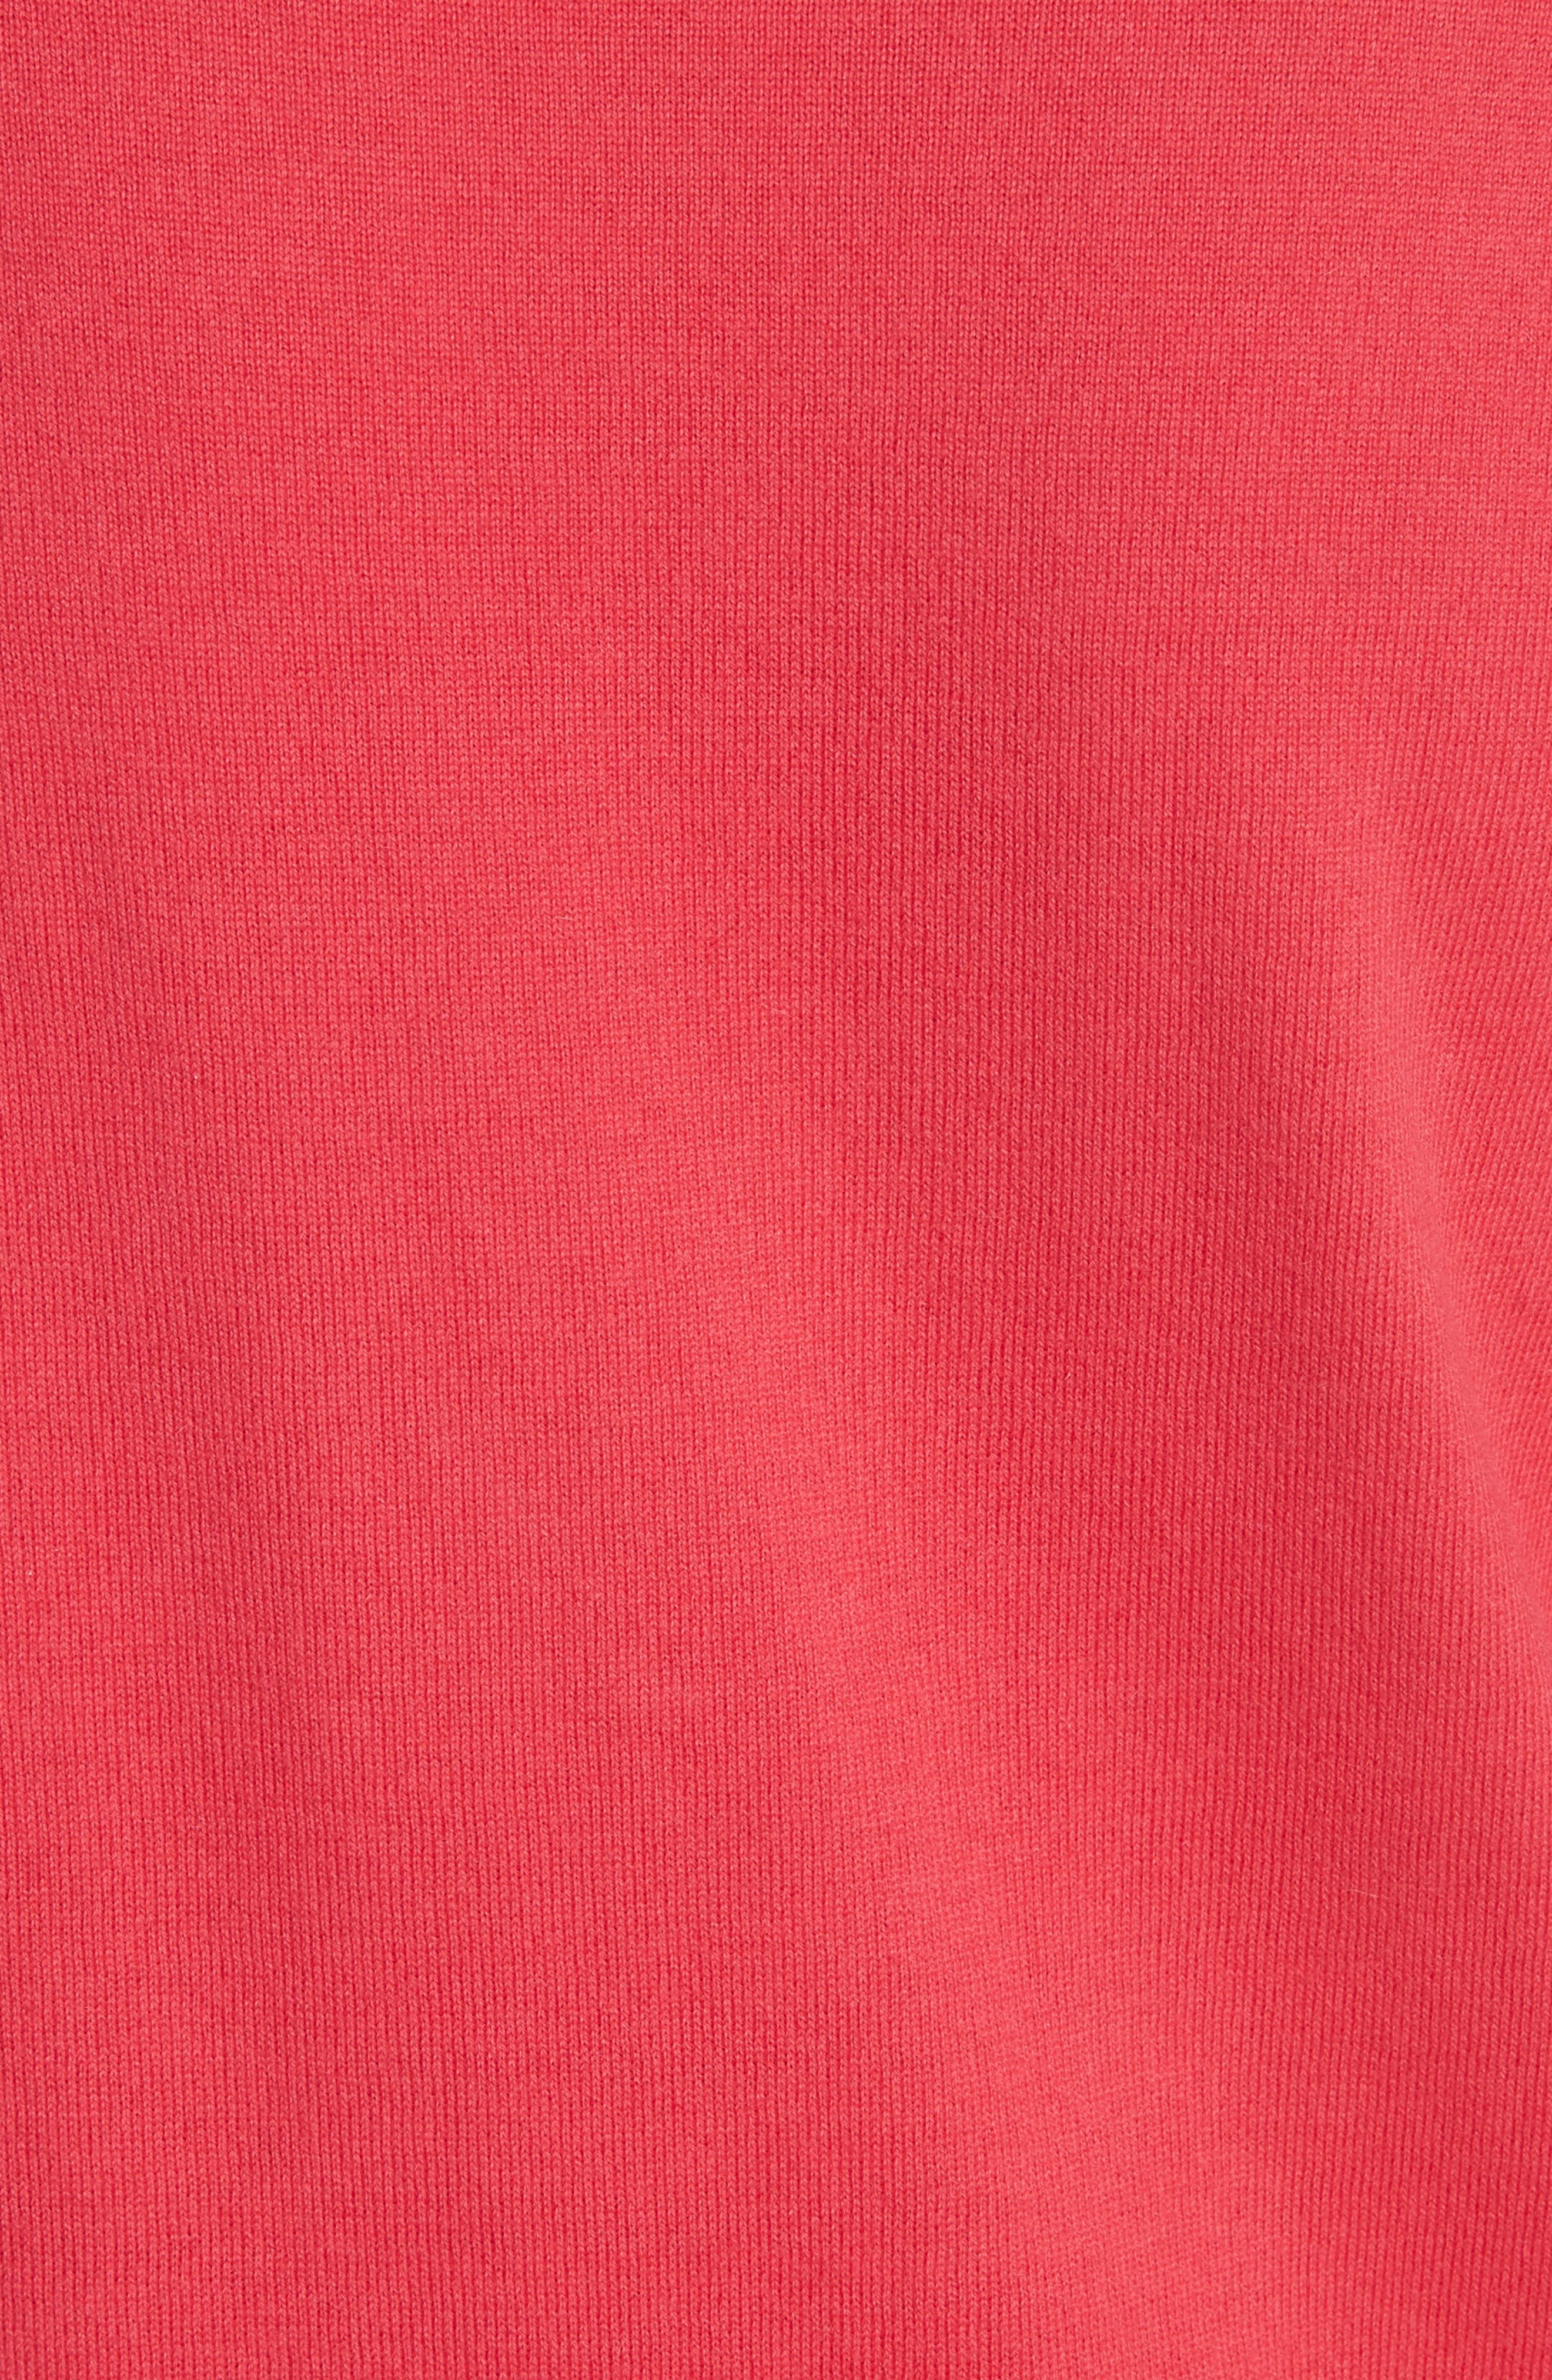 Cotton & Cashmere Sweater,                             Alternate thumbnail 5, color,                             Charged Pink